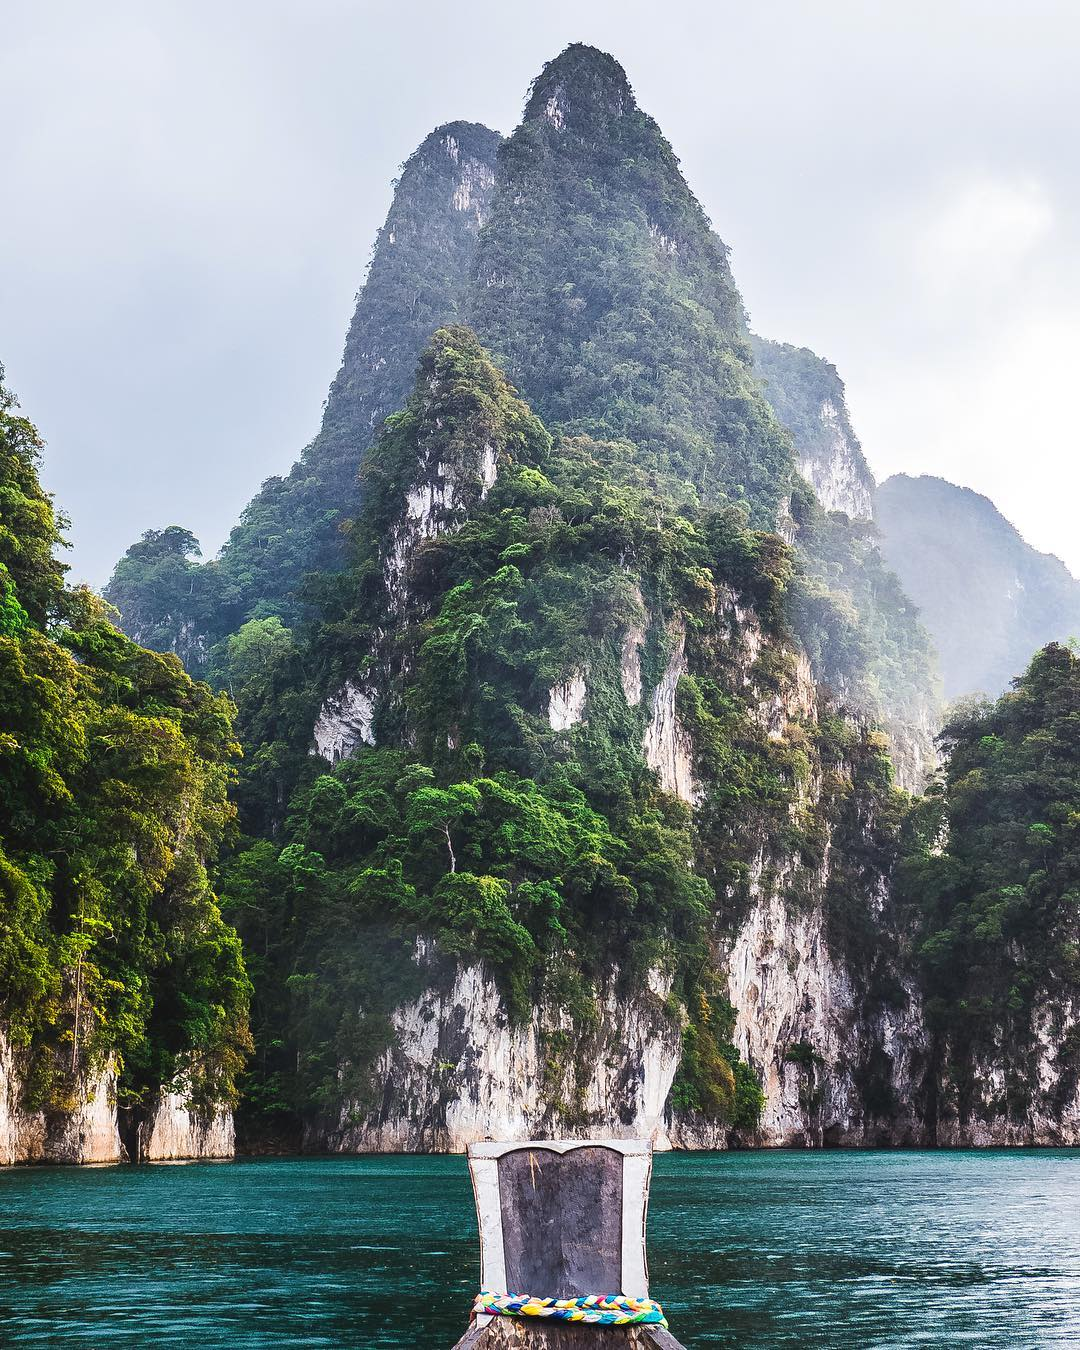 Large limestone rock seen from a longtail boat in Cheow Lan Lake